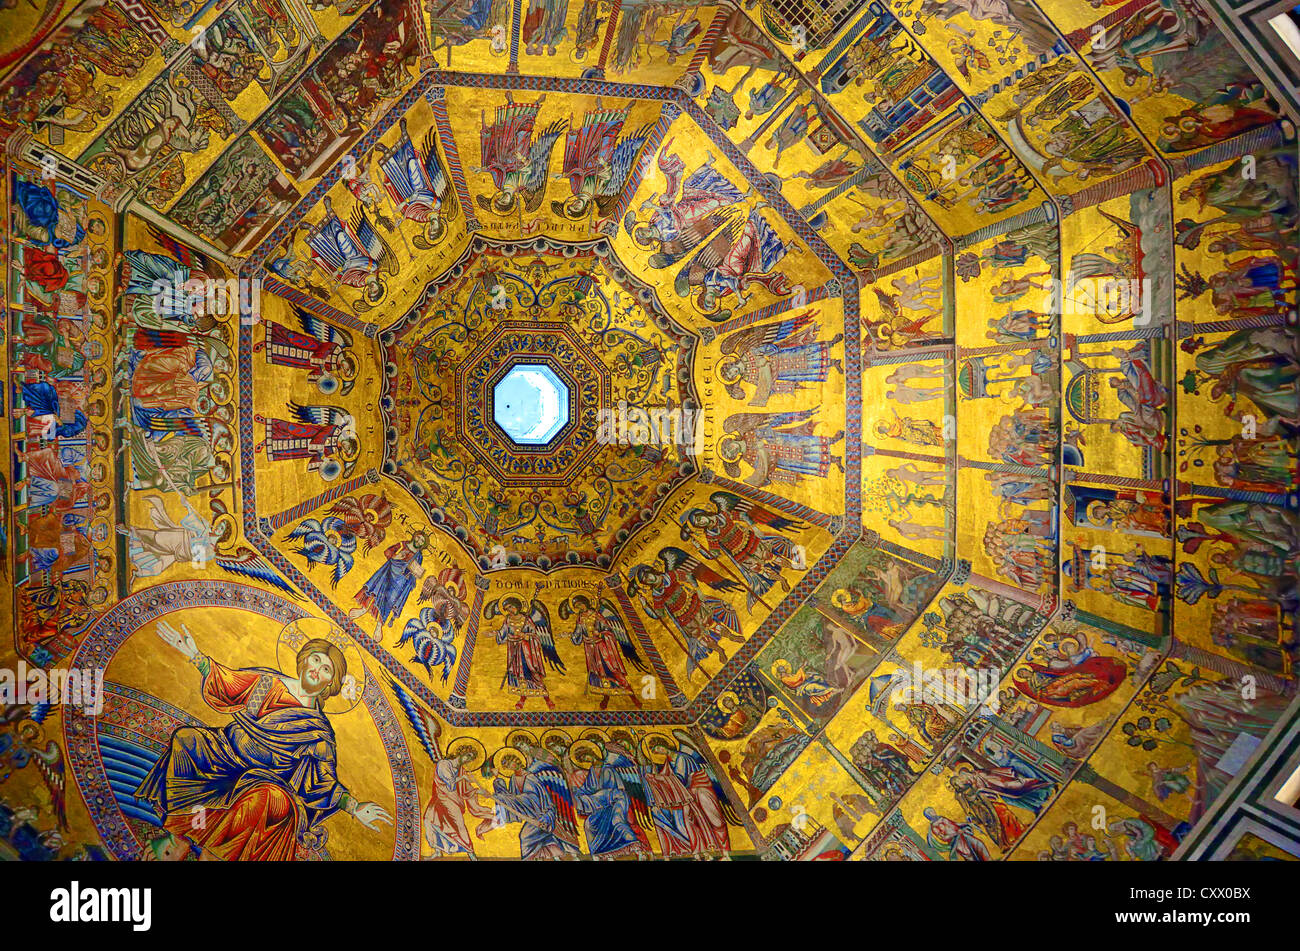 Opposite the Florence Duomo stands the Baptistry.  It is crowned by a magnificent mosaic ceiling. - Stock Image